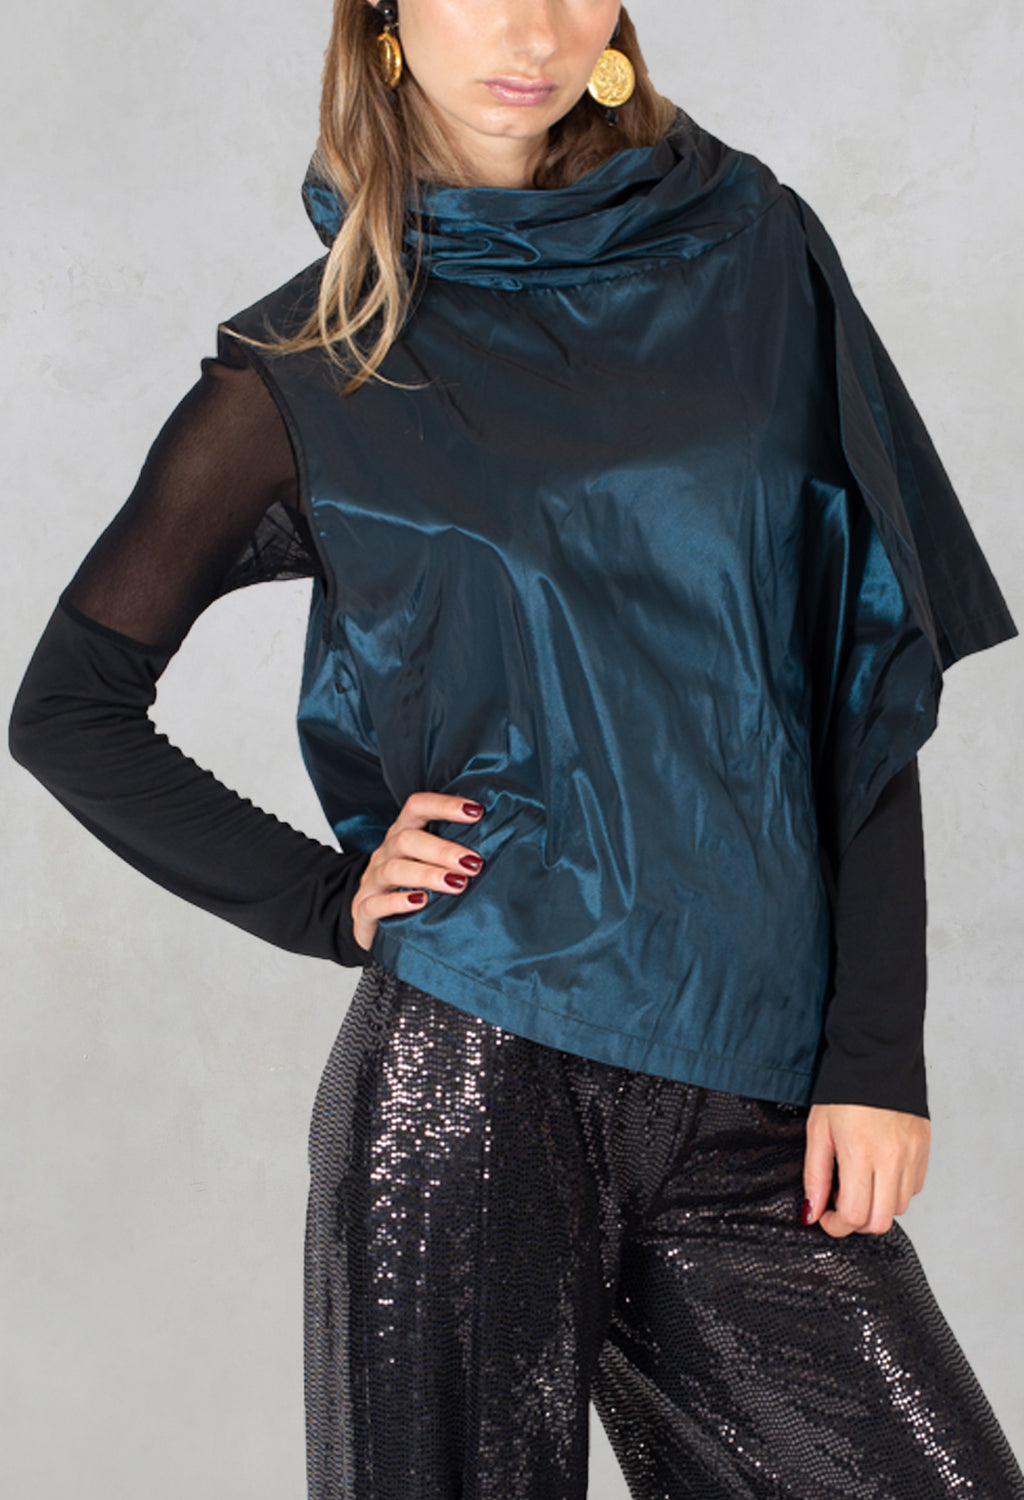 Sleeveless Boxy Top Maci1 in Dark Green